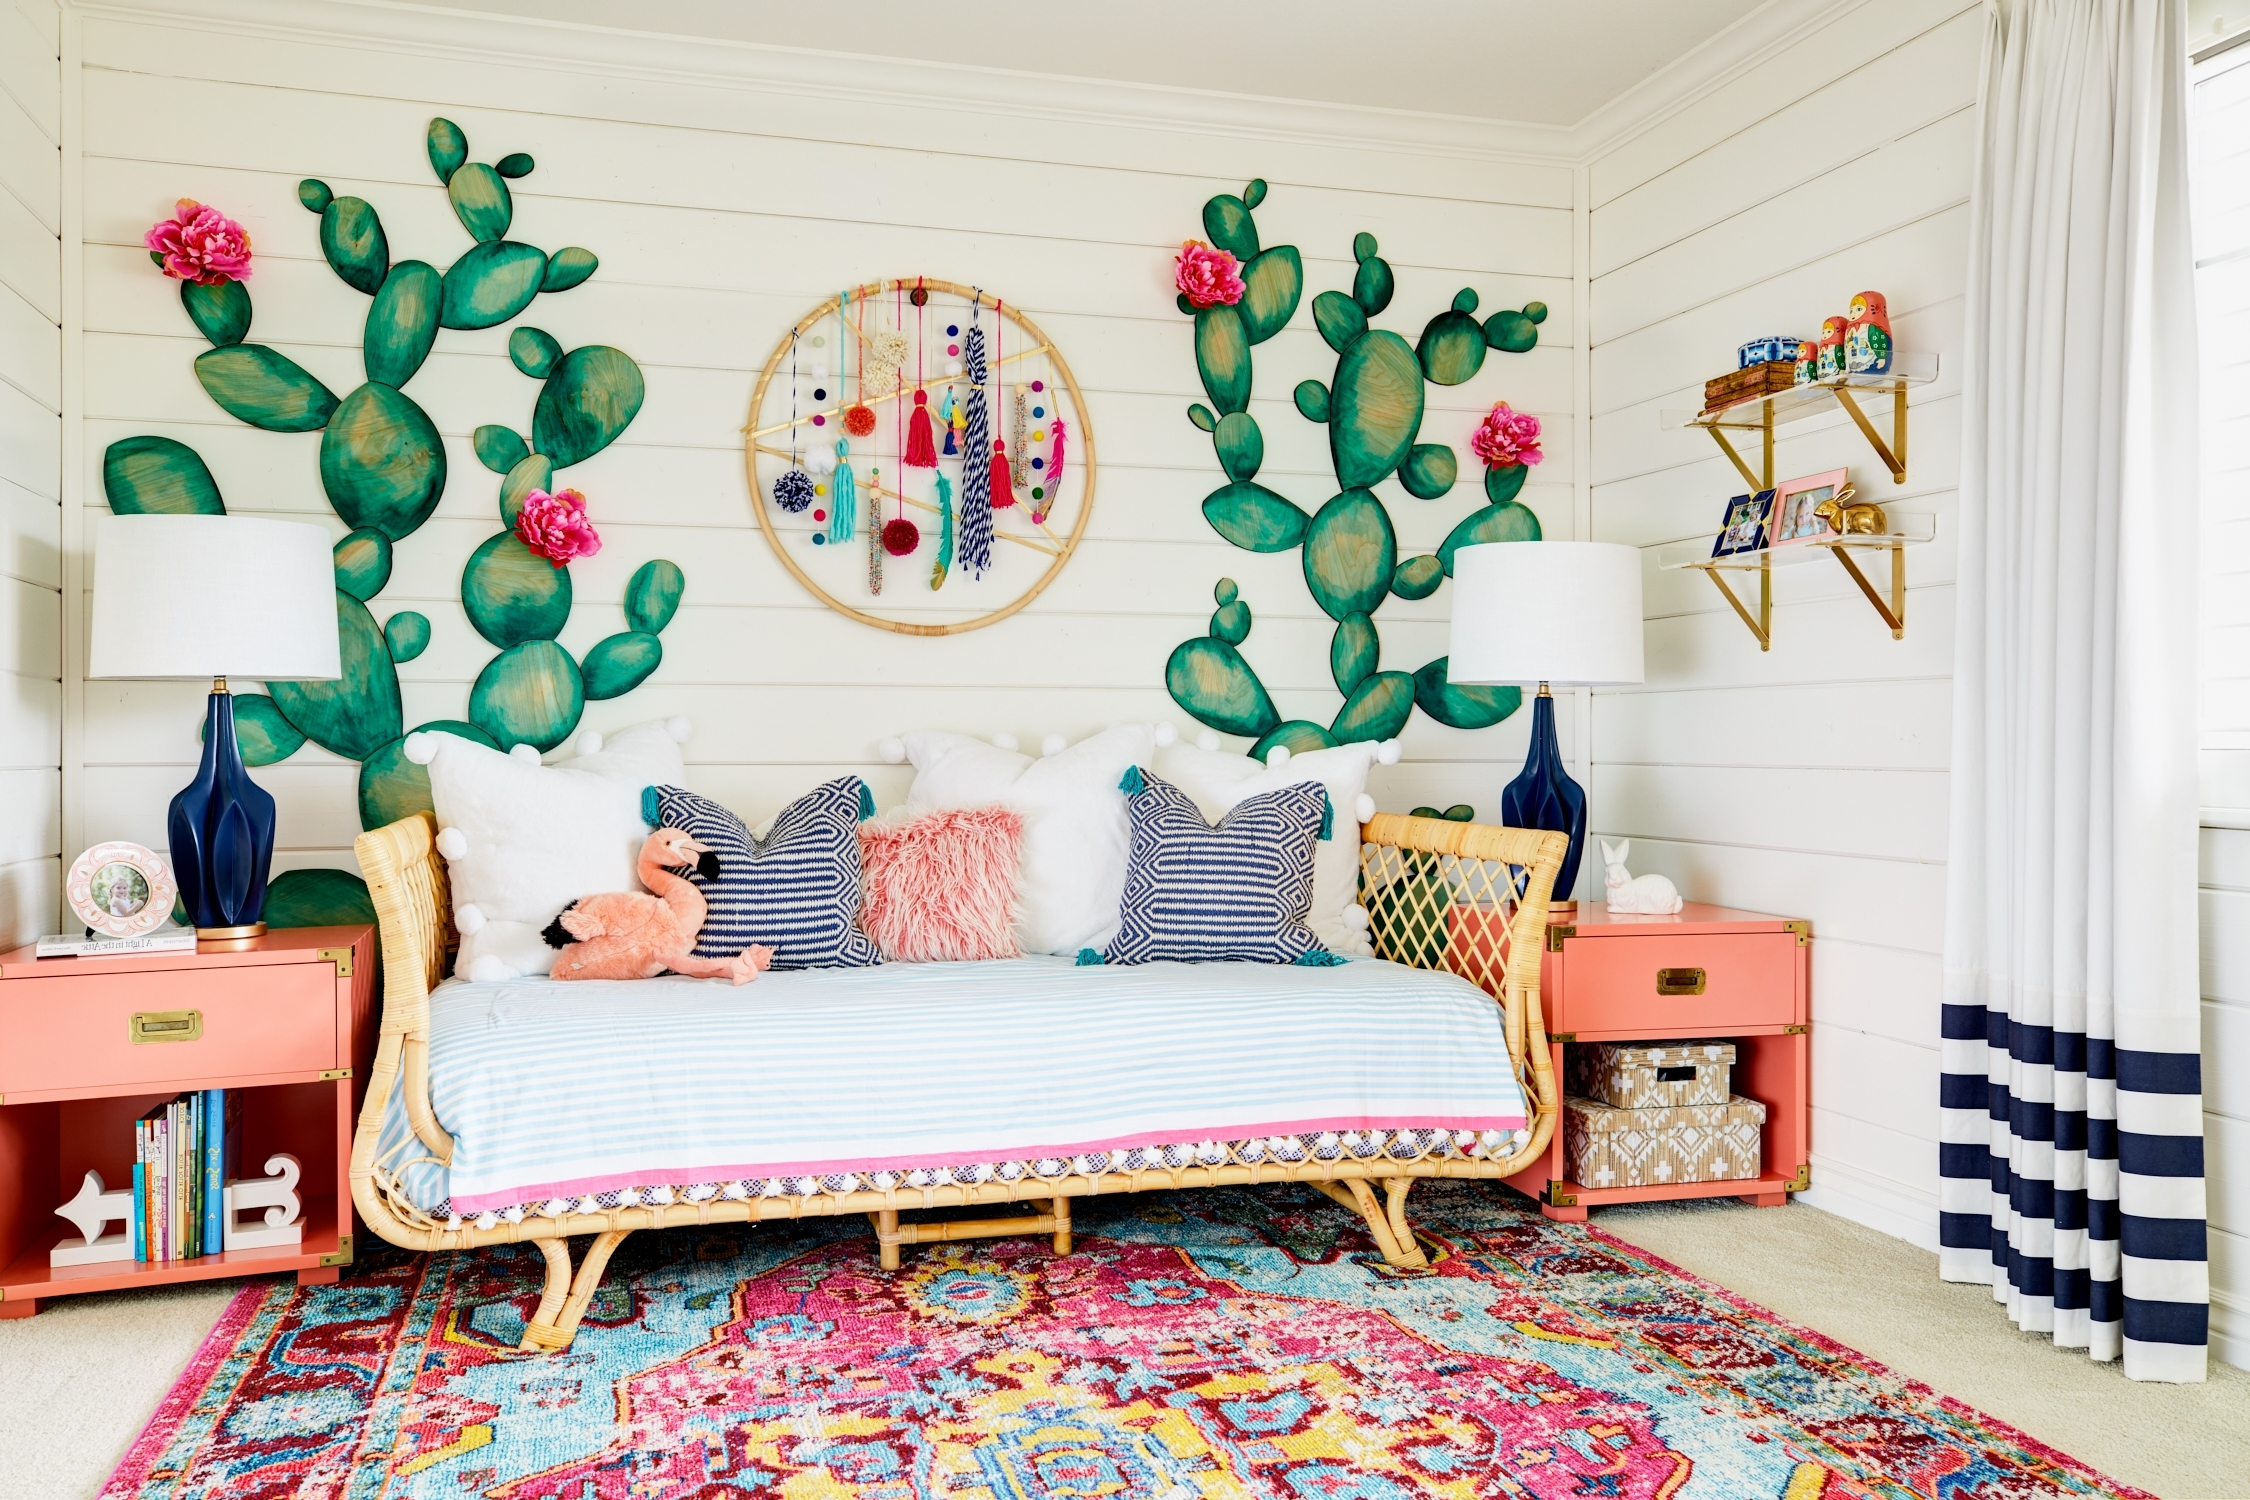 Recent There's Color And Texture And Whimsy To Spare In This Boho Chic Intended For Boho Chic Wall Art (View 11 of 15)